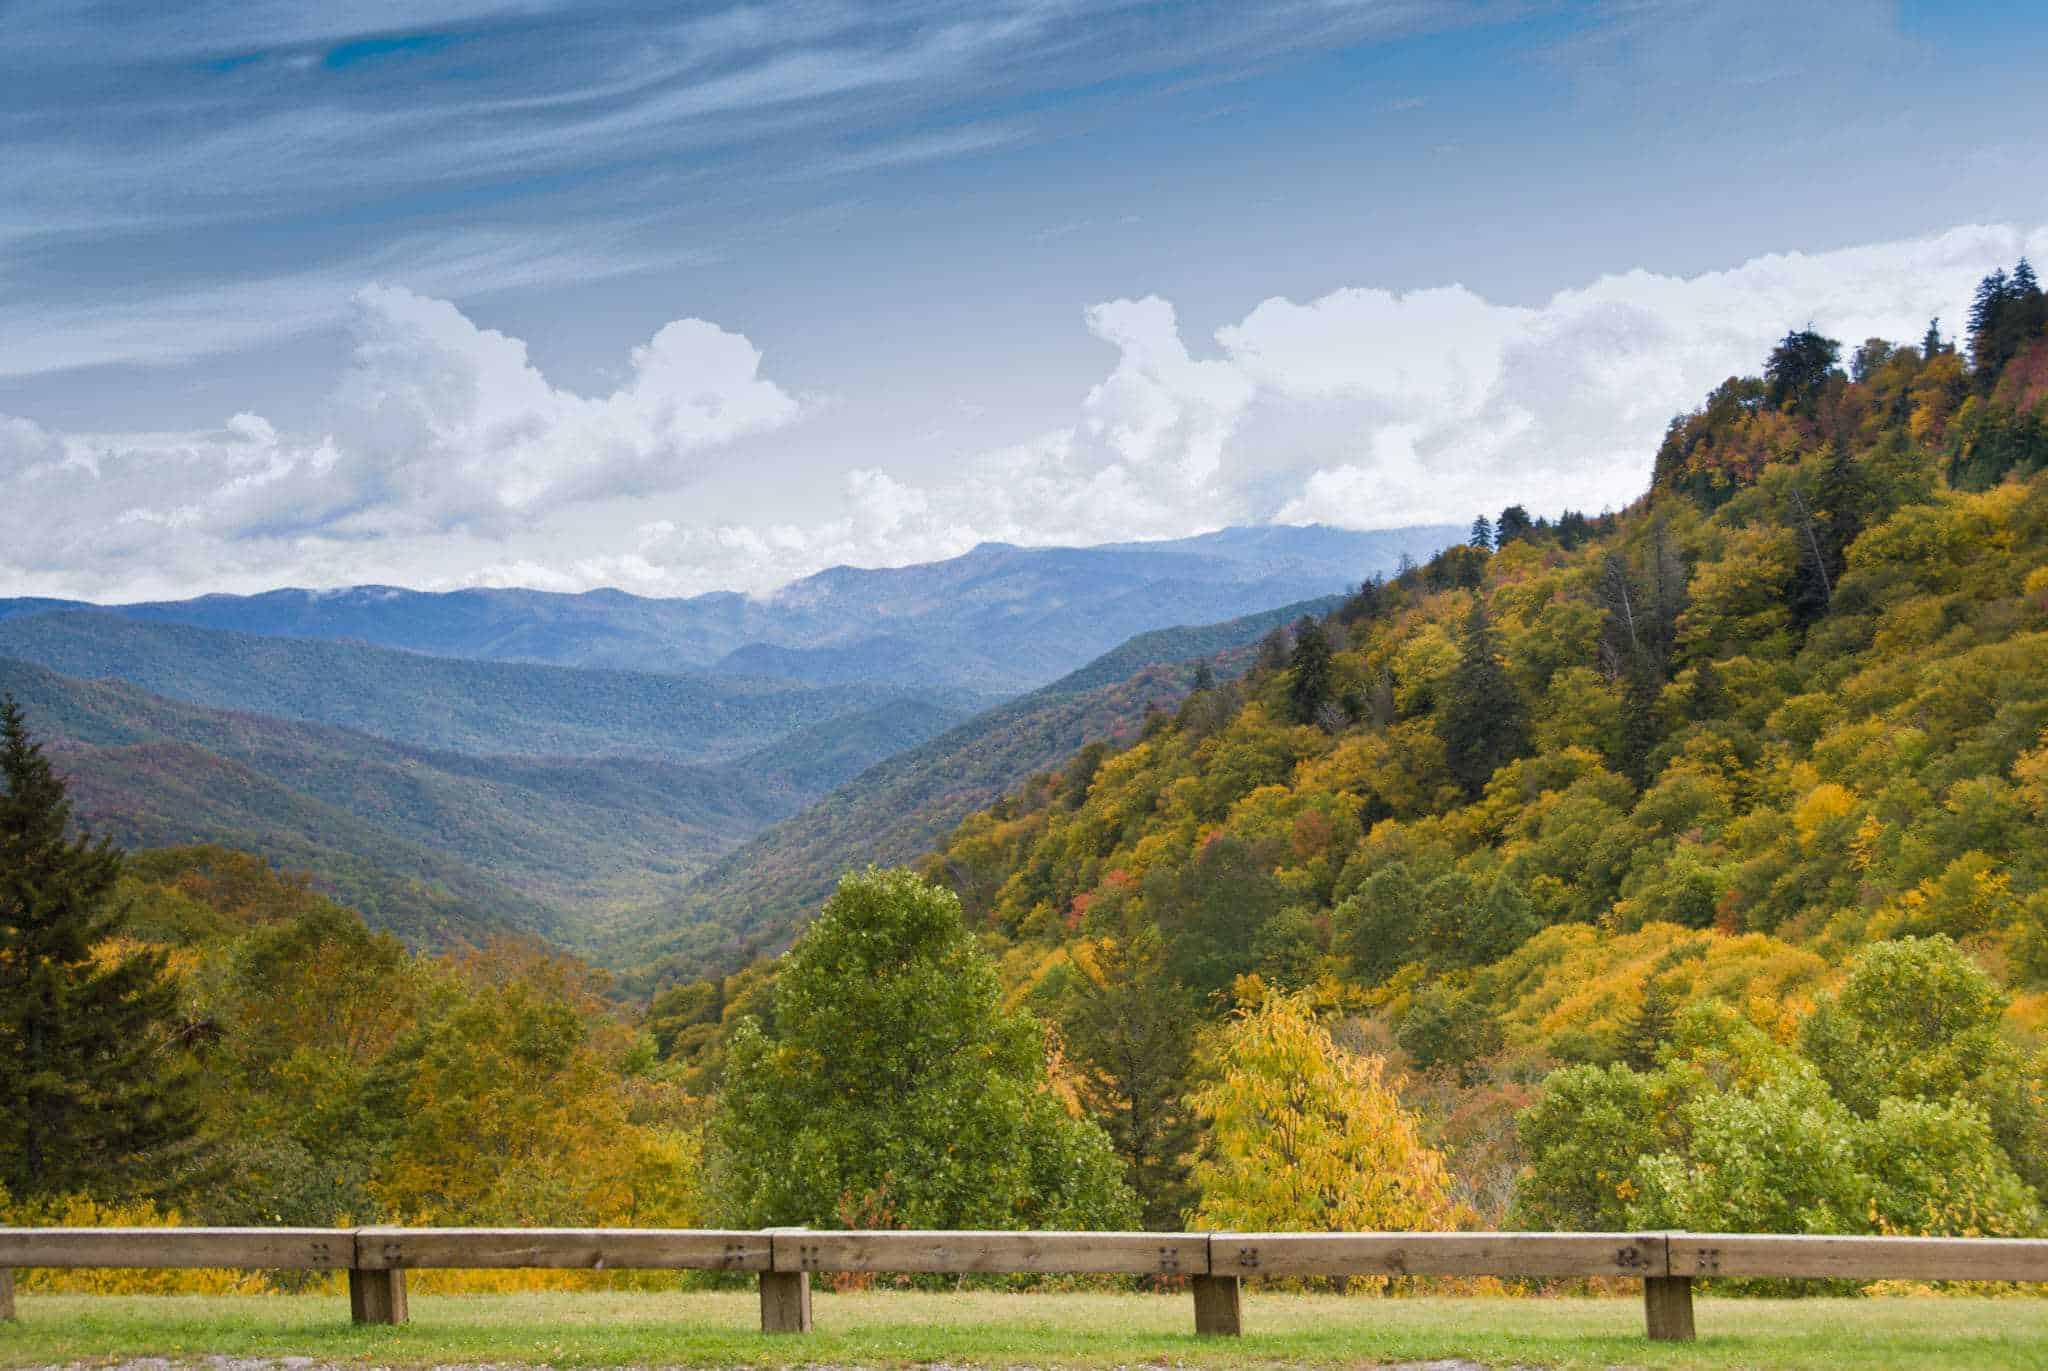 Fall In The Smokies Wallpaper 5 Wears Valley Restaurants You Didn T Know About But Should